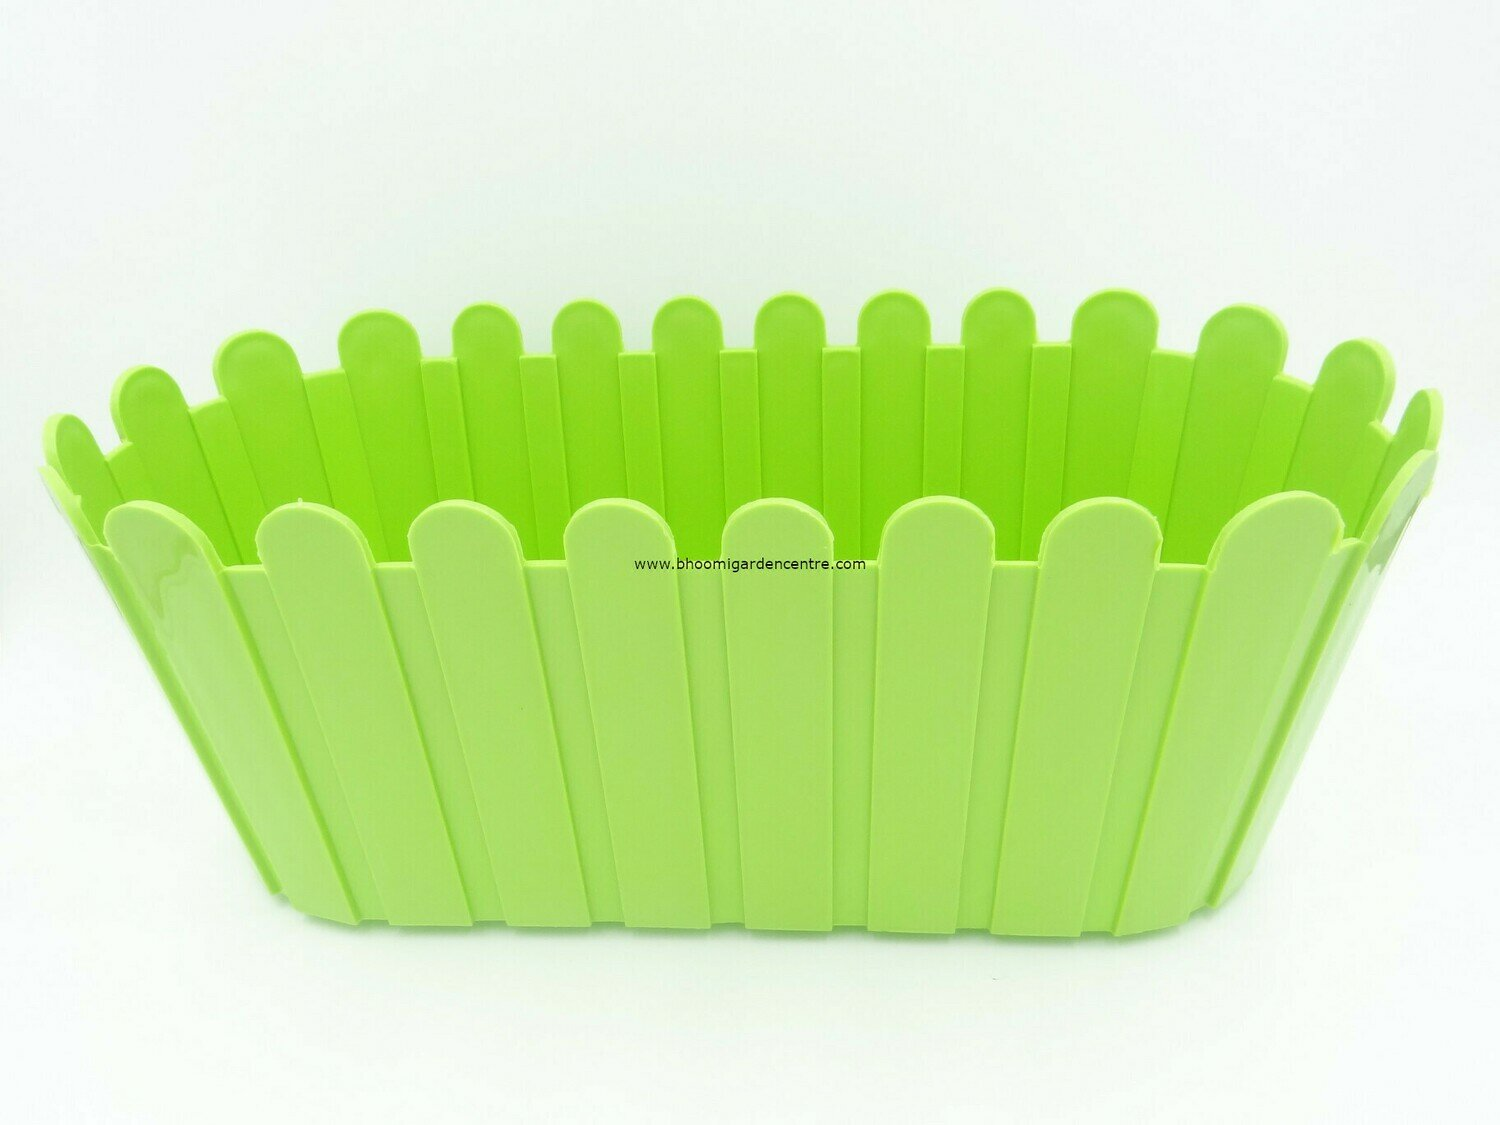 Fence window planter 14inch (multiple colors)